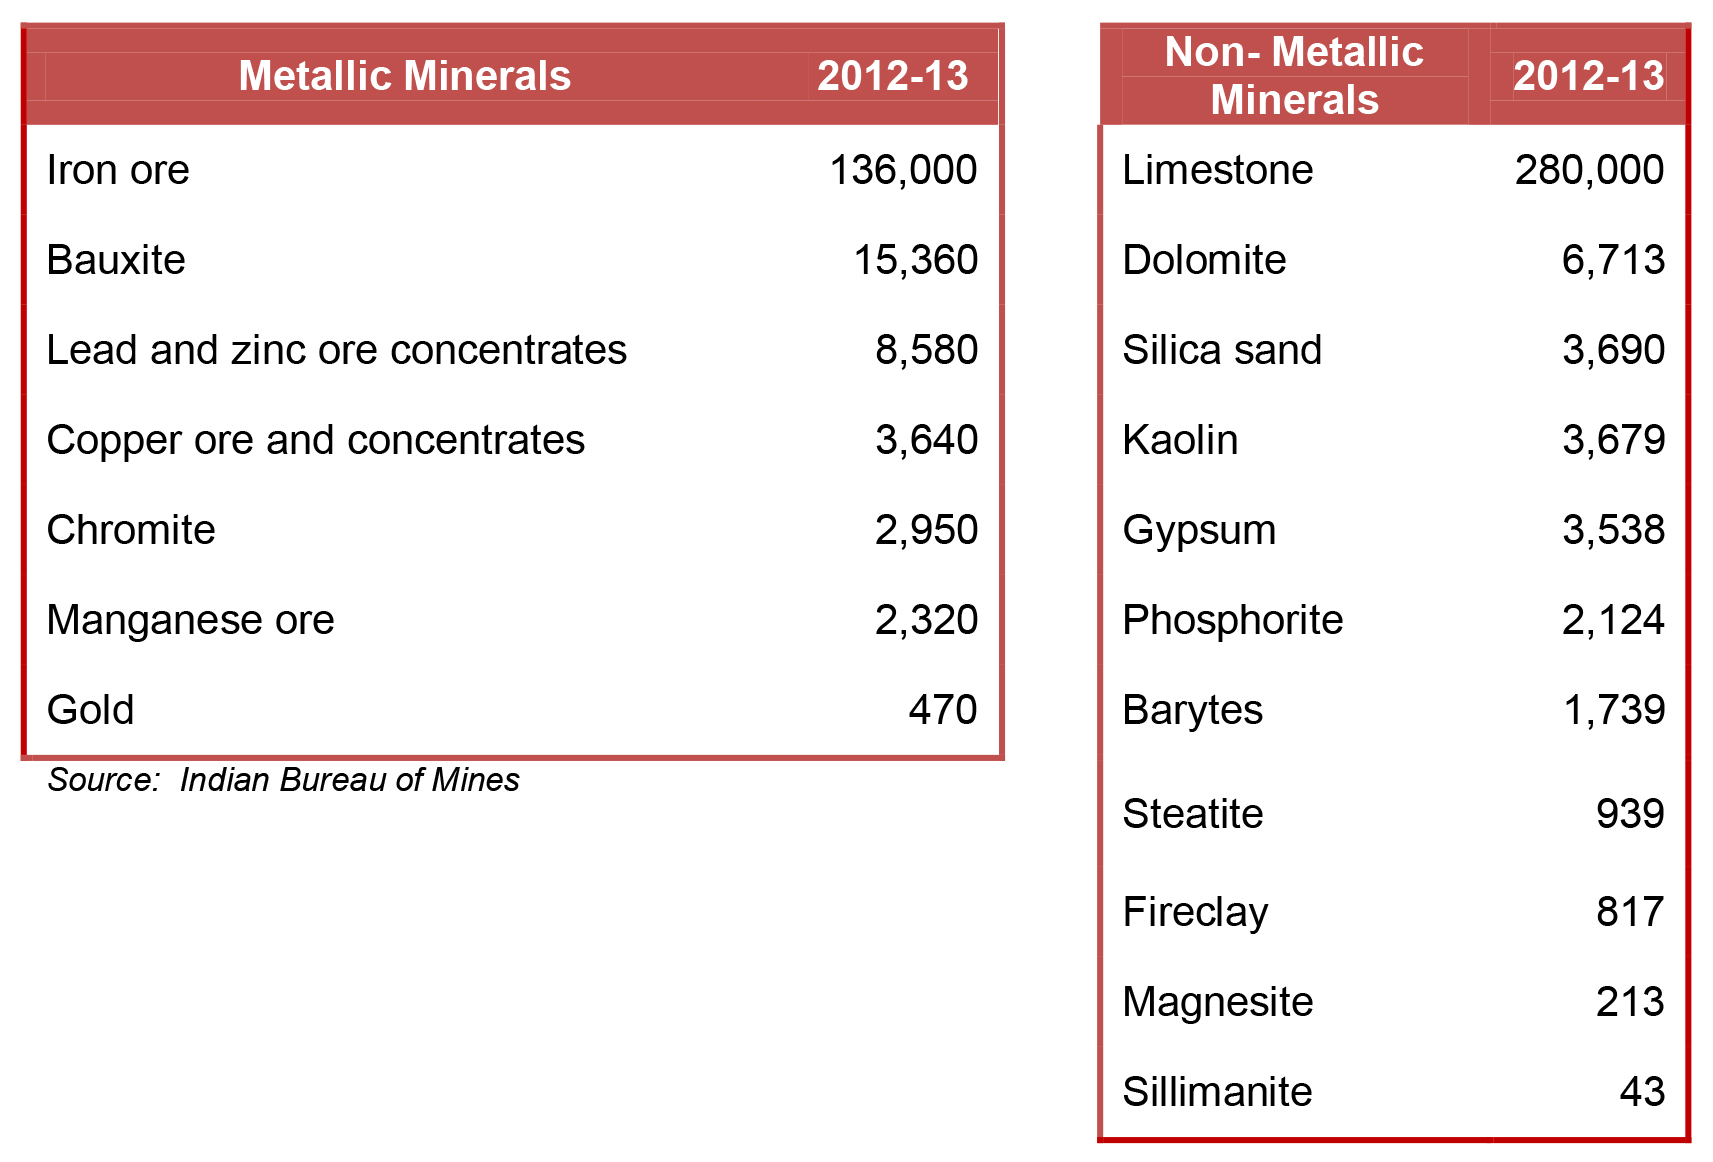 Metallic and Non-Metallic Minerals Sector in India